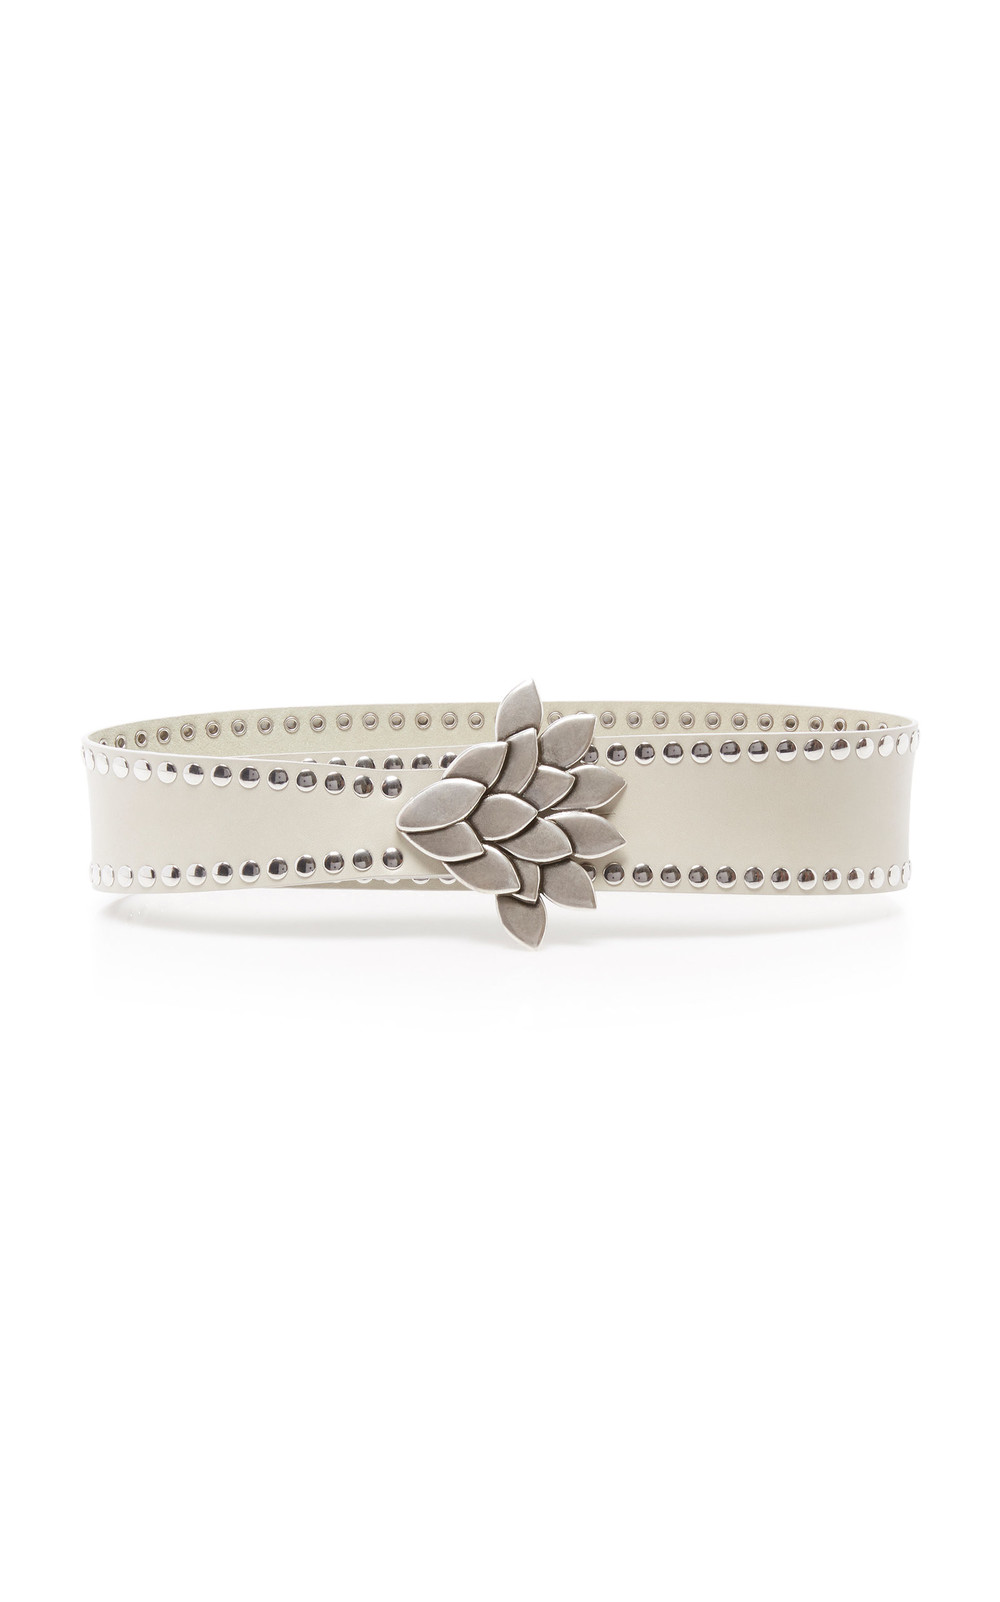 Isabel Marant Lowi Studded Leather Belt Size: M in white